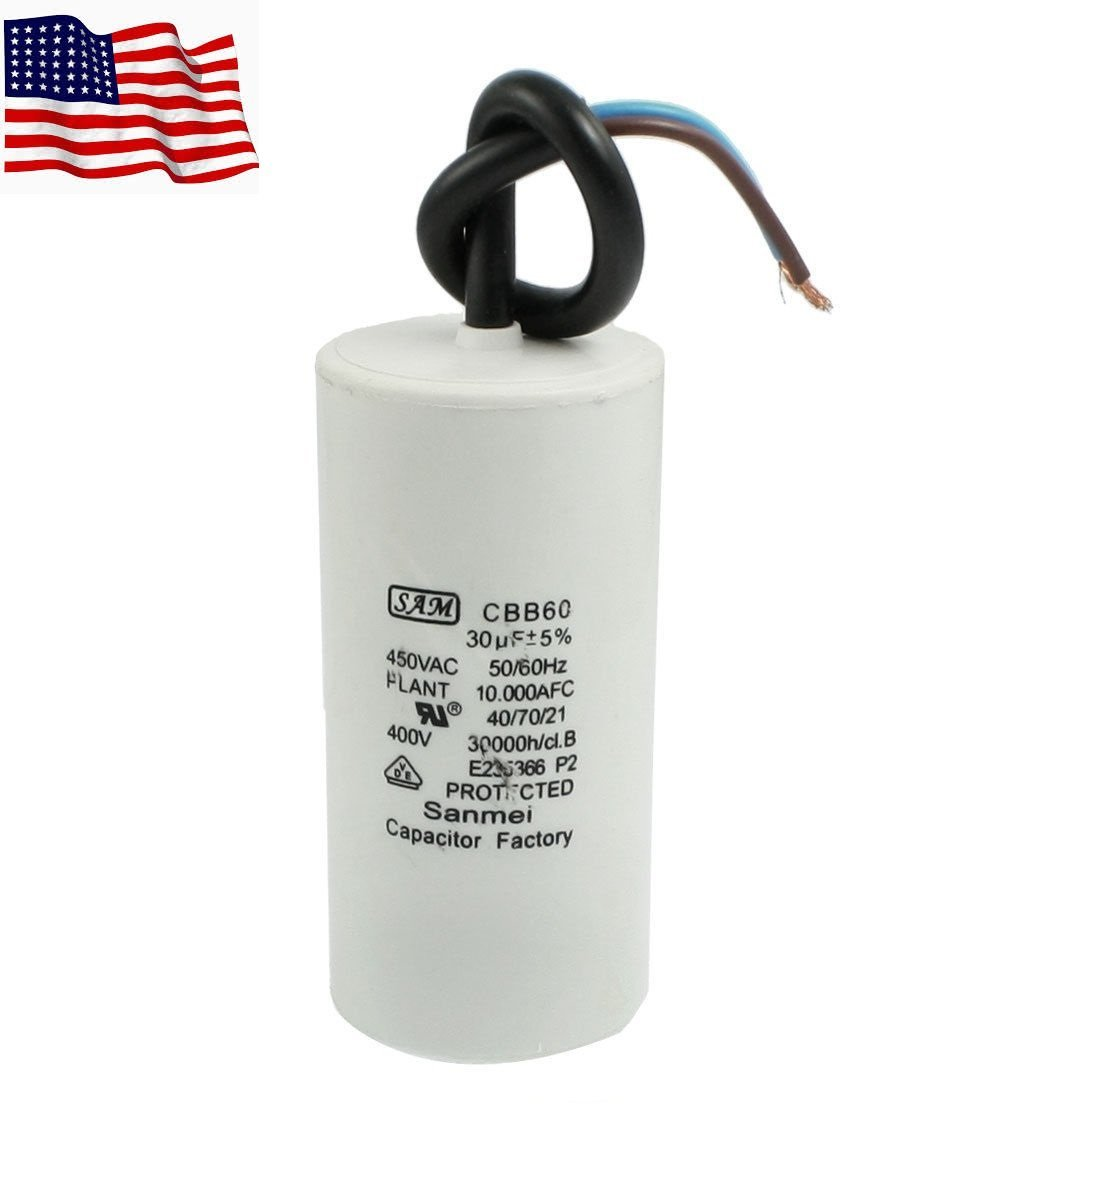 CBB60 Motor AC 450V 30uF Running Capacitor w 2 Lead Wires US Ship